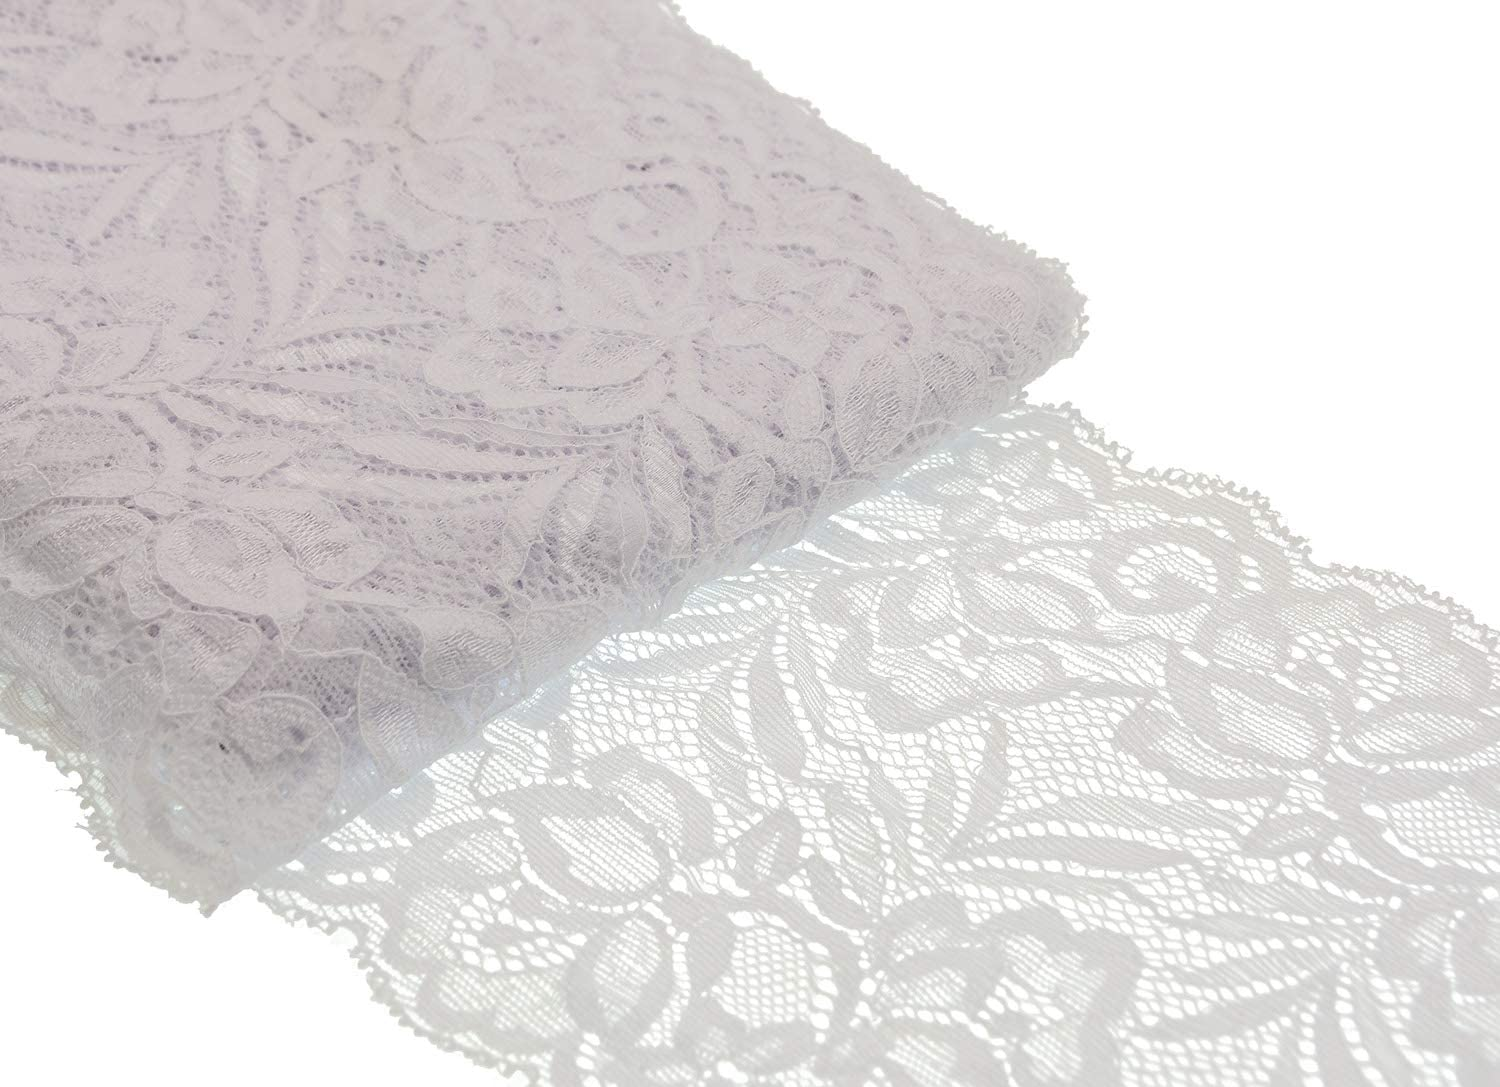 ATRibbons 10 Yards 6 Inch Wide Elastic All items free shipping Pattern Lace Trim Floral Max 55% OFF